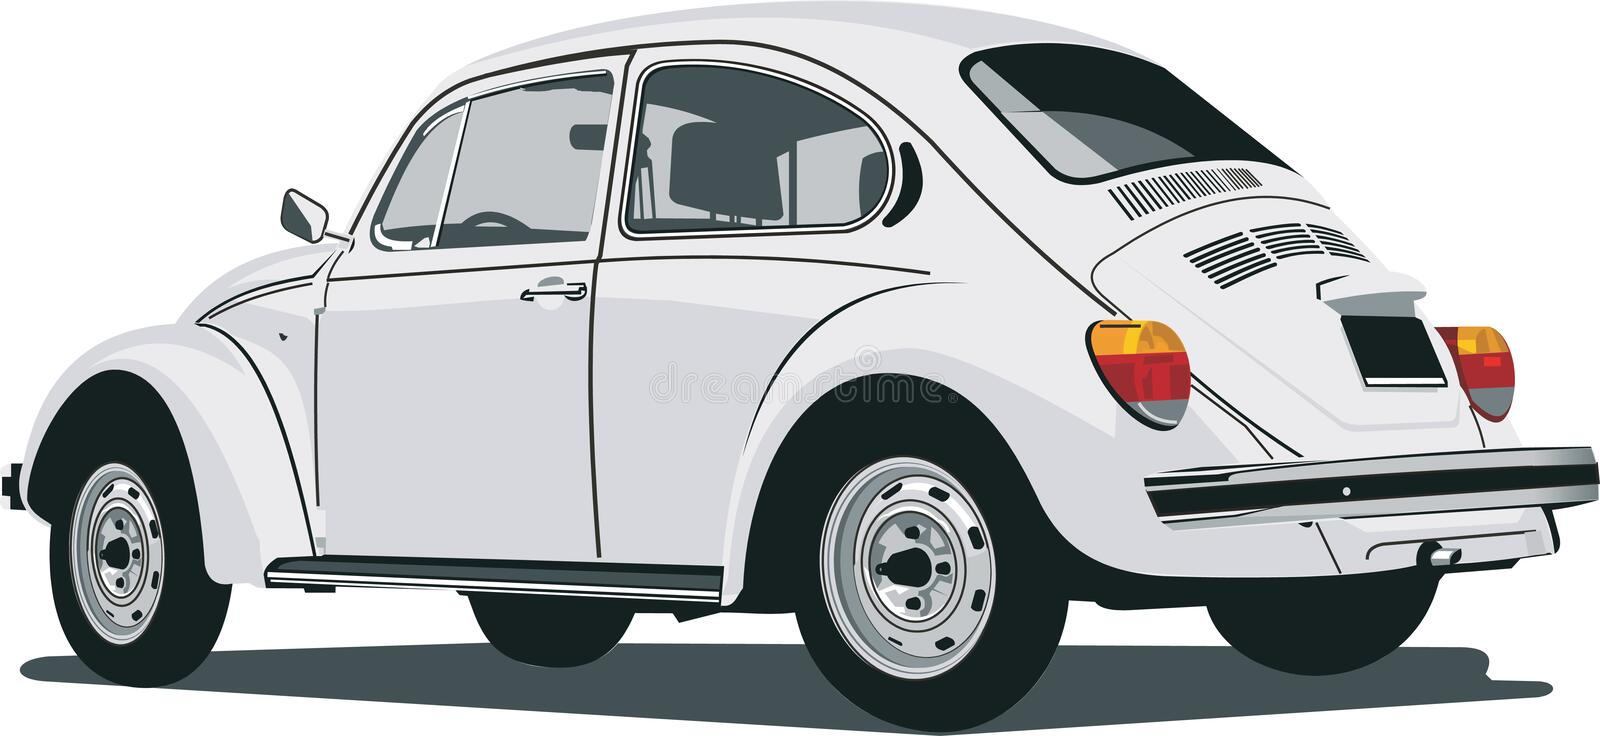 Back view of a vw beetle vector illustration